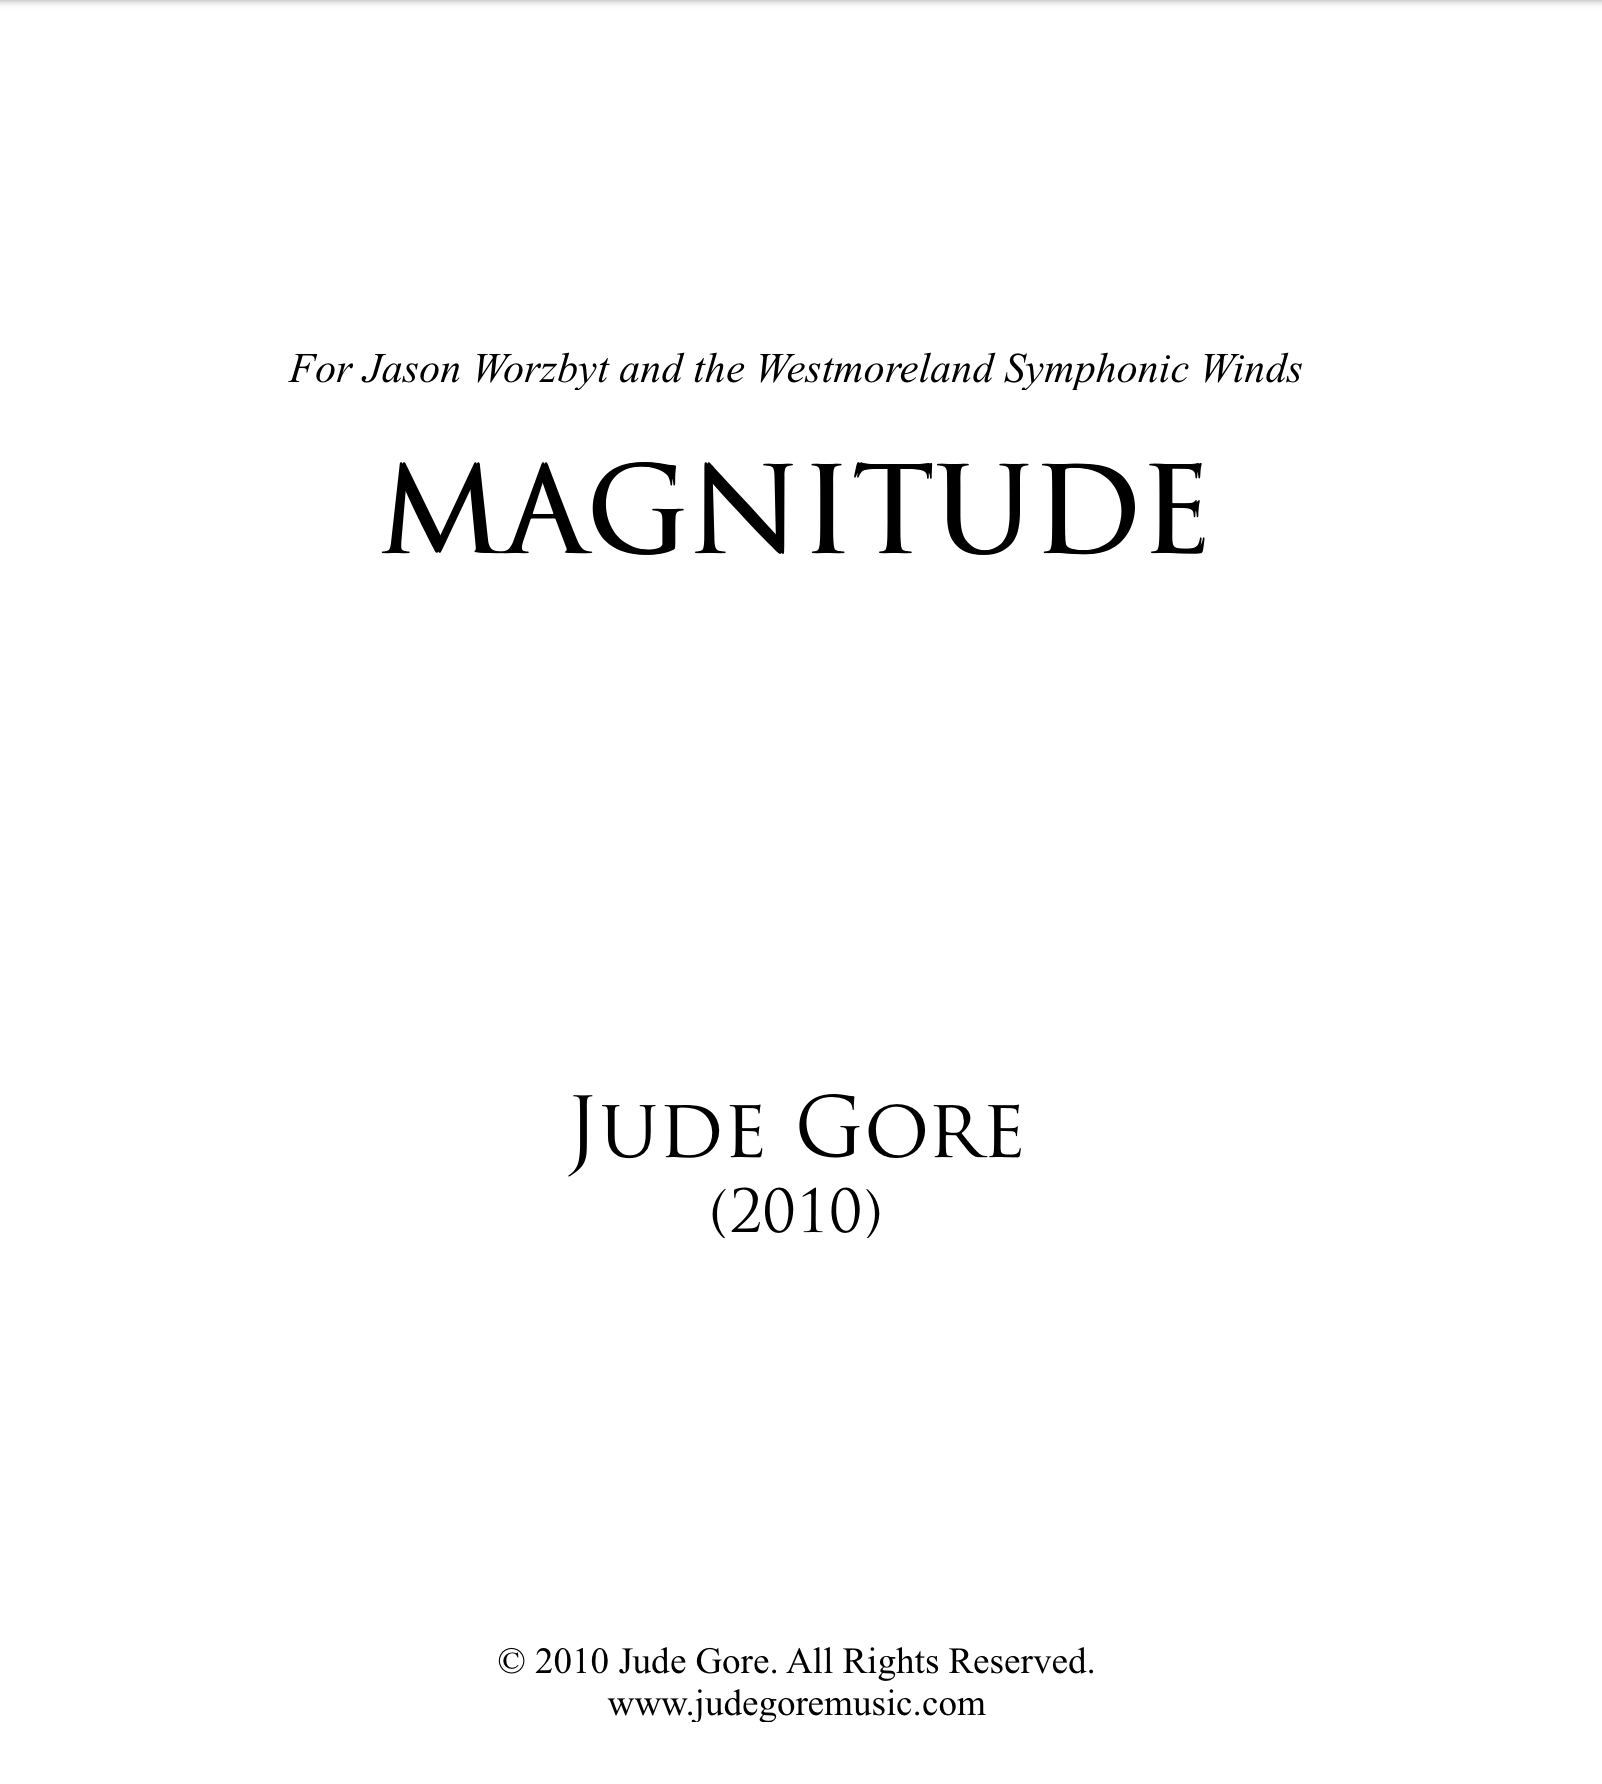 Magnitude  by Jude Gore